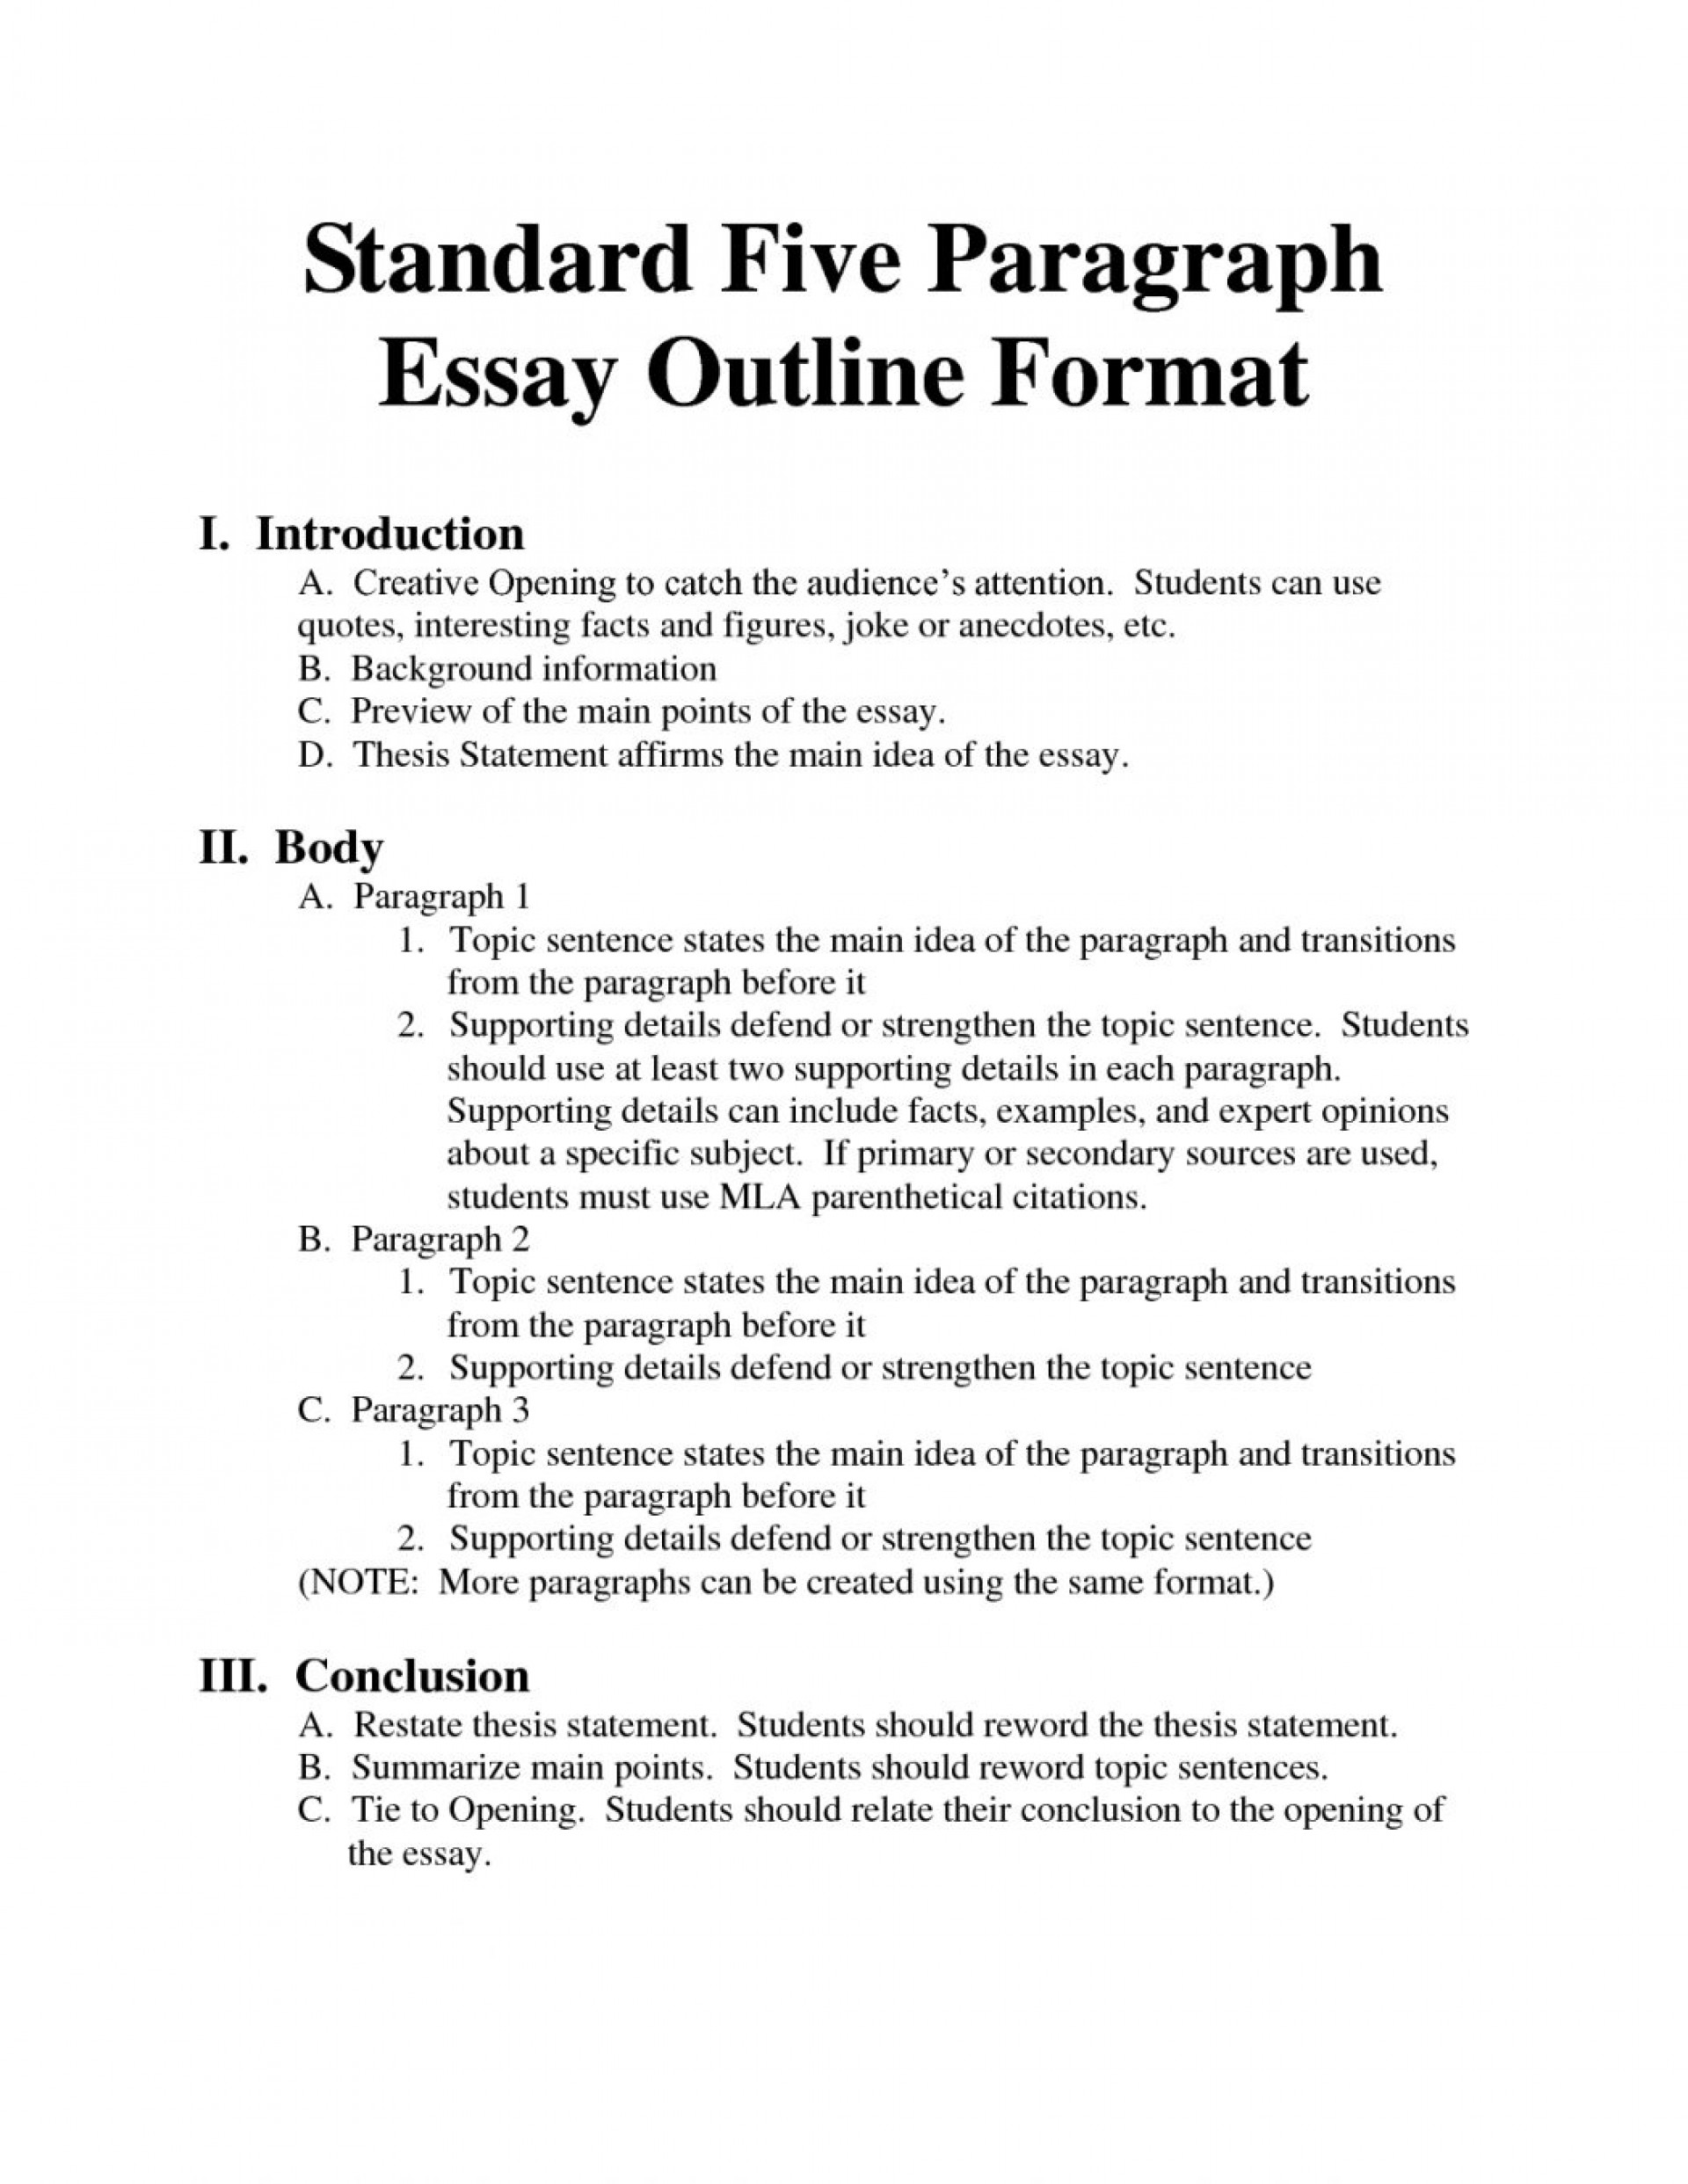 008 College Level Essay Outline Writings And Essaysow To Write Standard Format Bing Imagesomeschool Pintere Good Informative Introduction Argumentative Narrative Descriptive Persuasive 1048x1356 Impressive How A Steps 1920